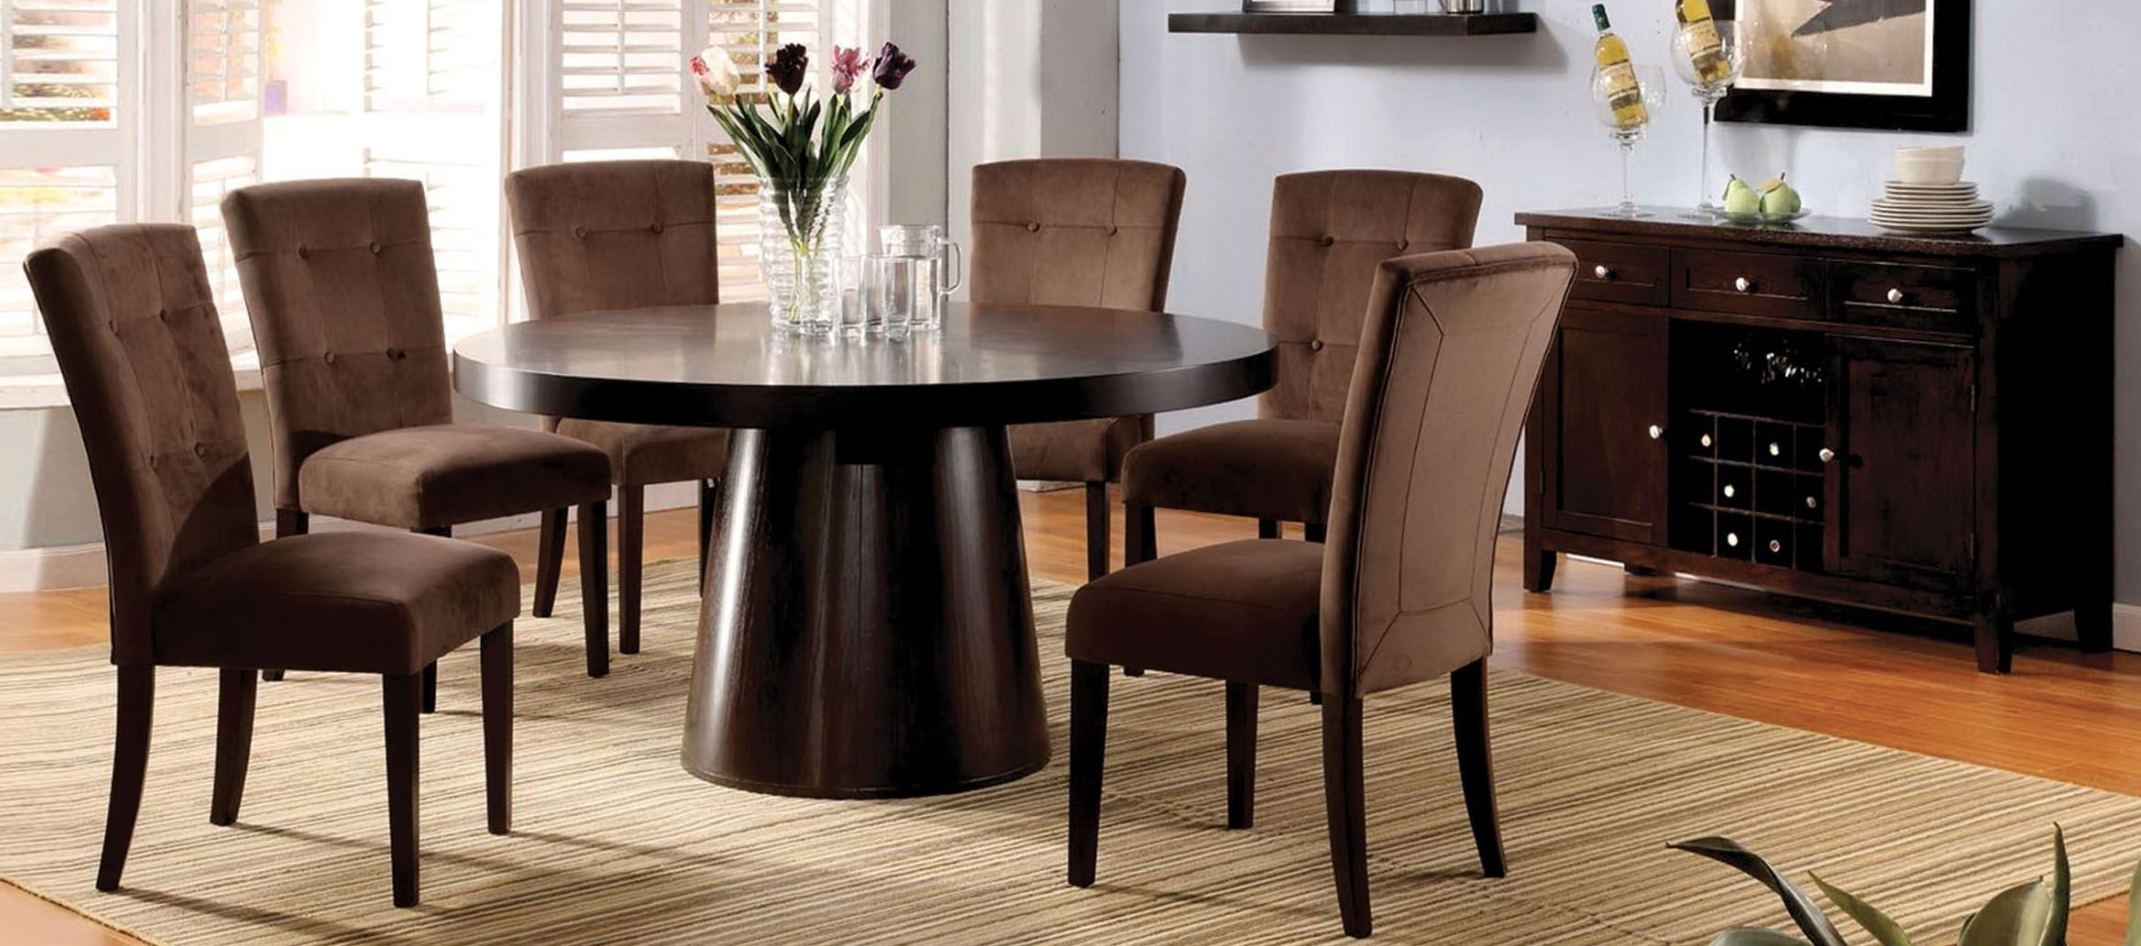 Havana espresso round pedestal dining room set from for Front room furniture sets